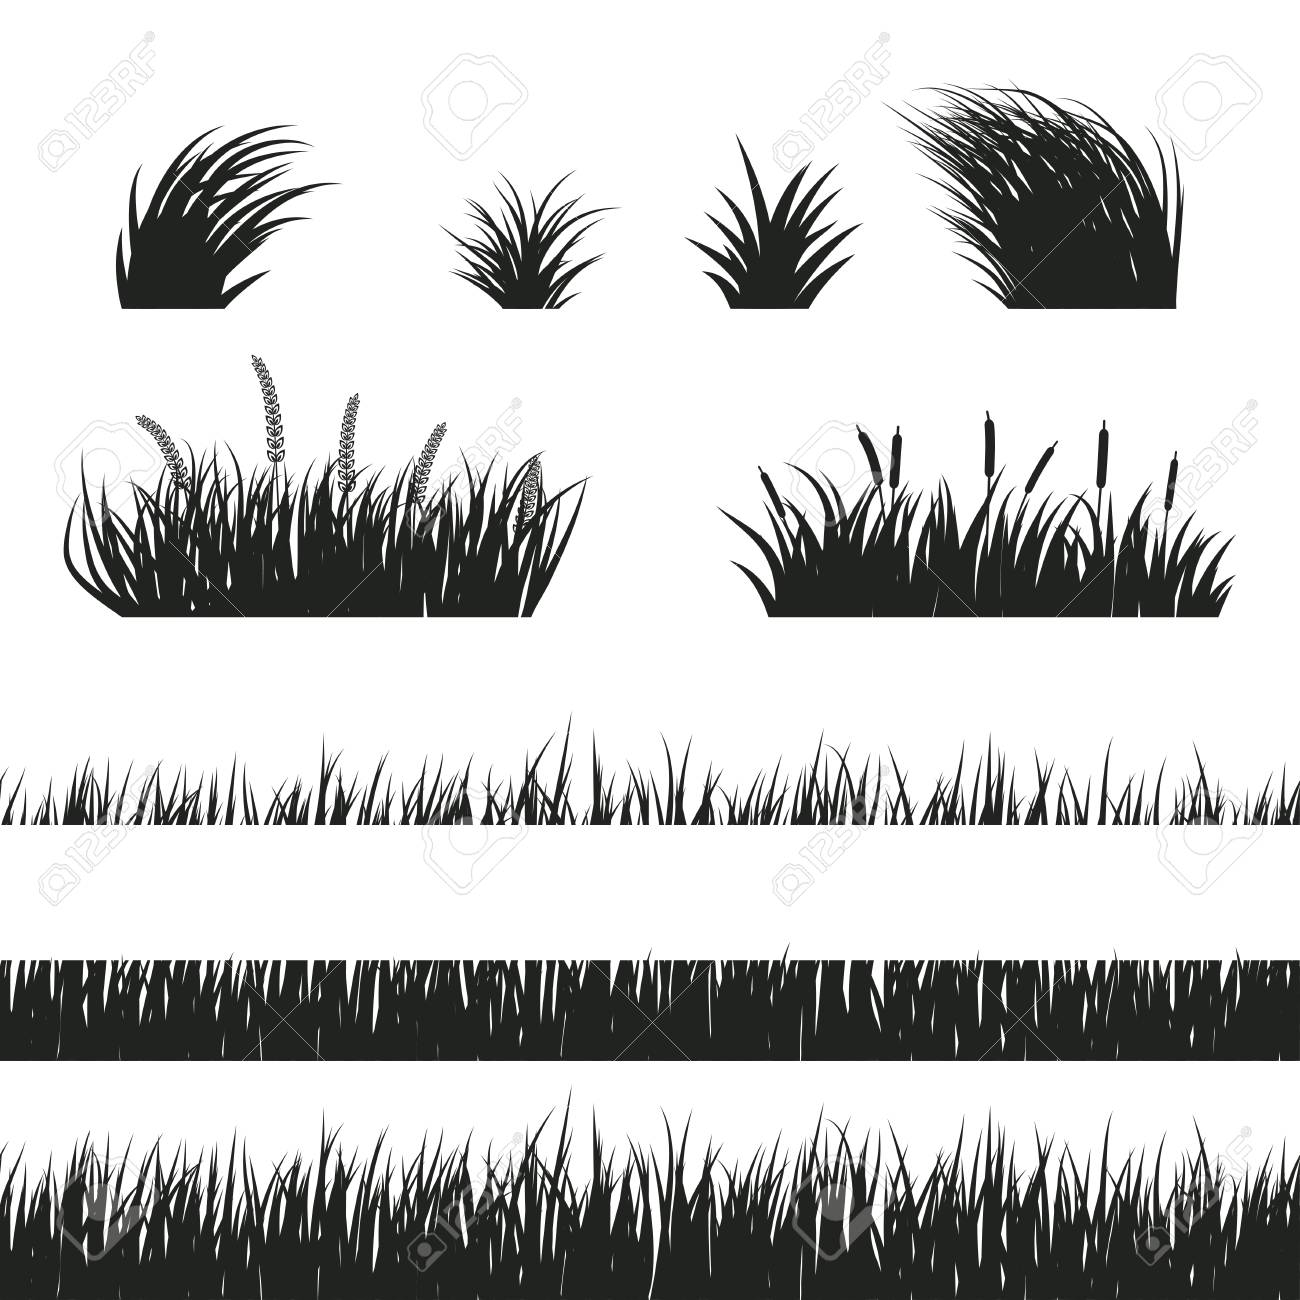 black and white horizontal seamless grass silhouette lawn grass royalty free cliparts vectors and stock illustration image 97466605 black and white horizontal seamless grass silhouette lawn grass